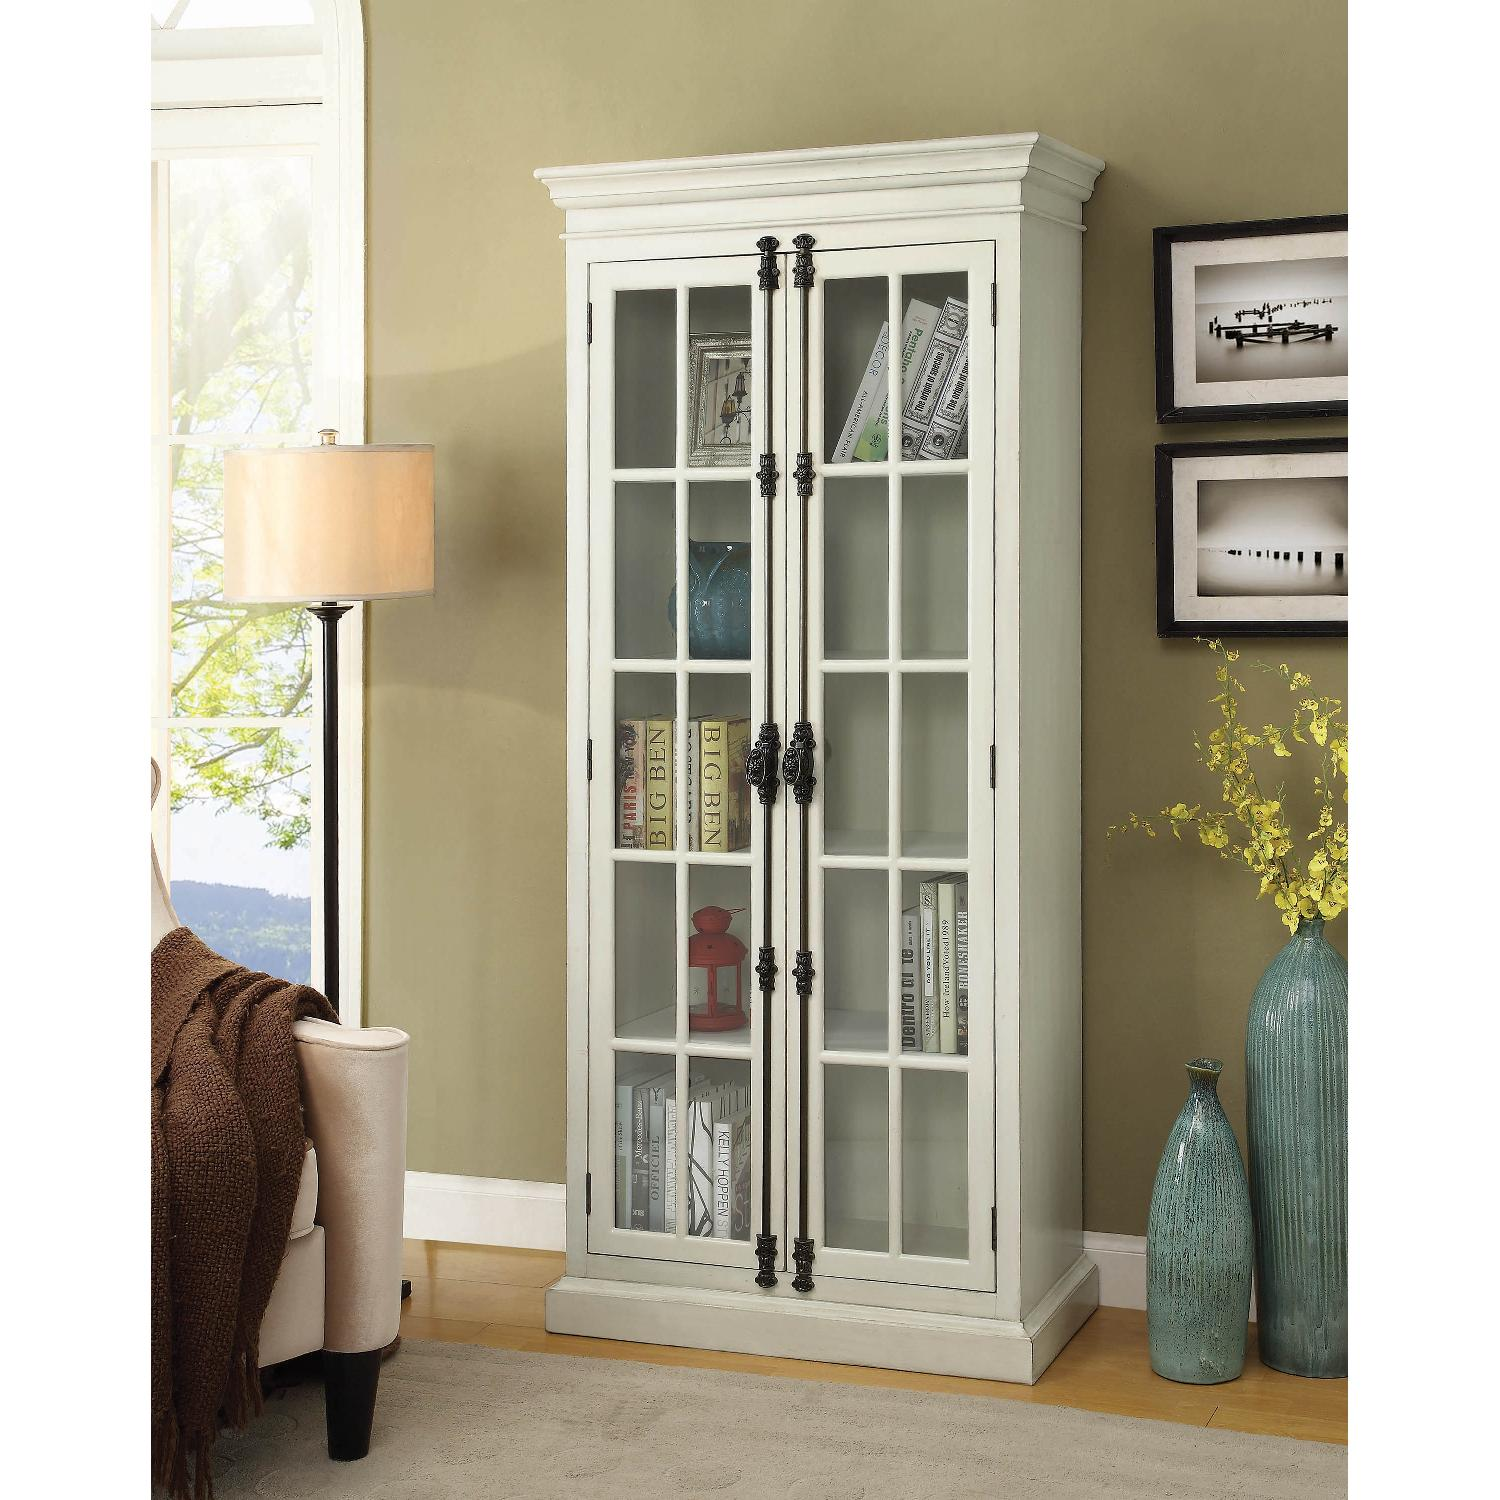 Classic French Style Cabinet w/ Shelves & Glass Doors - image-2